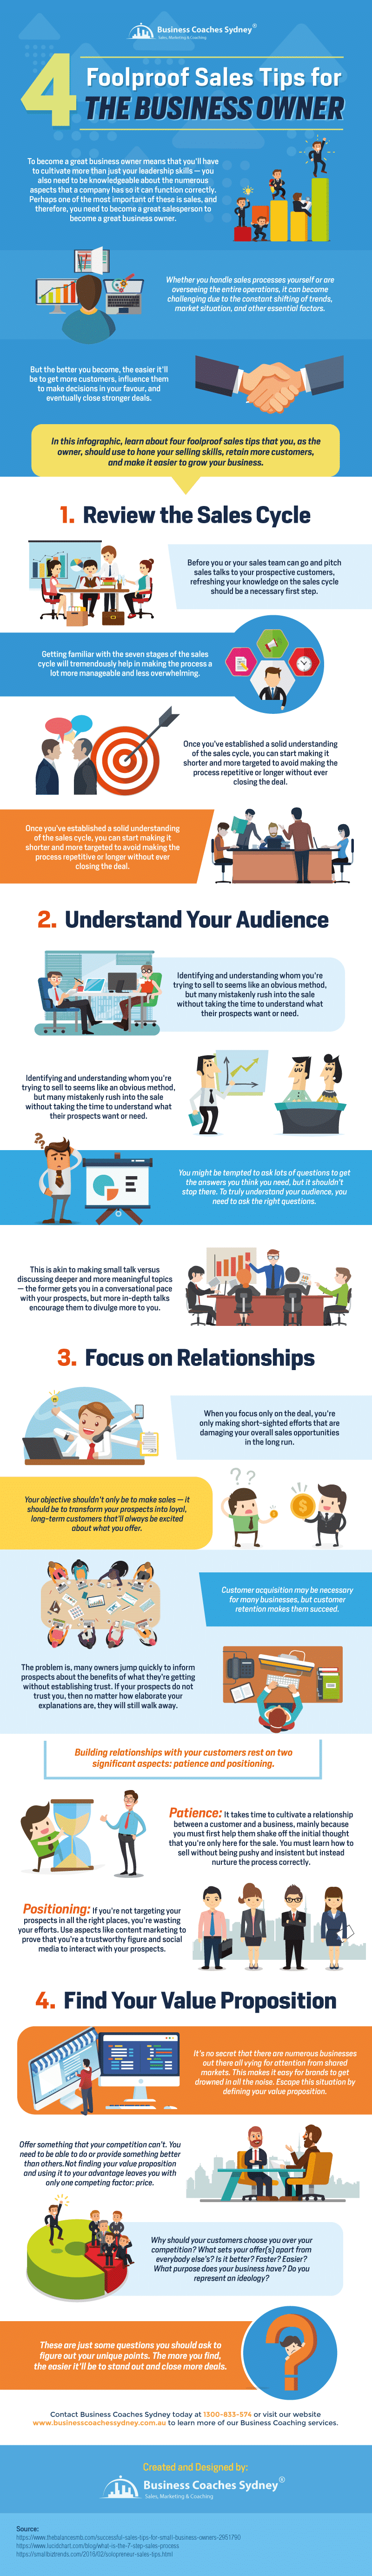 4 sales tips for businesses infographic